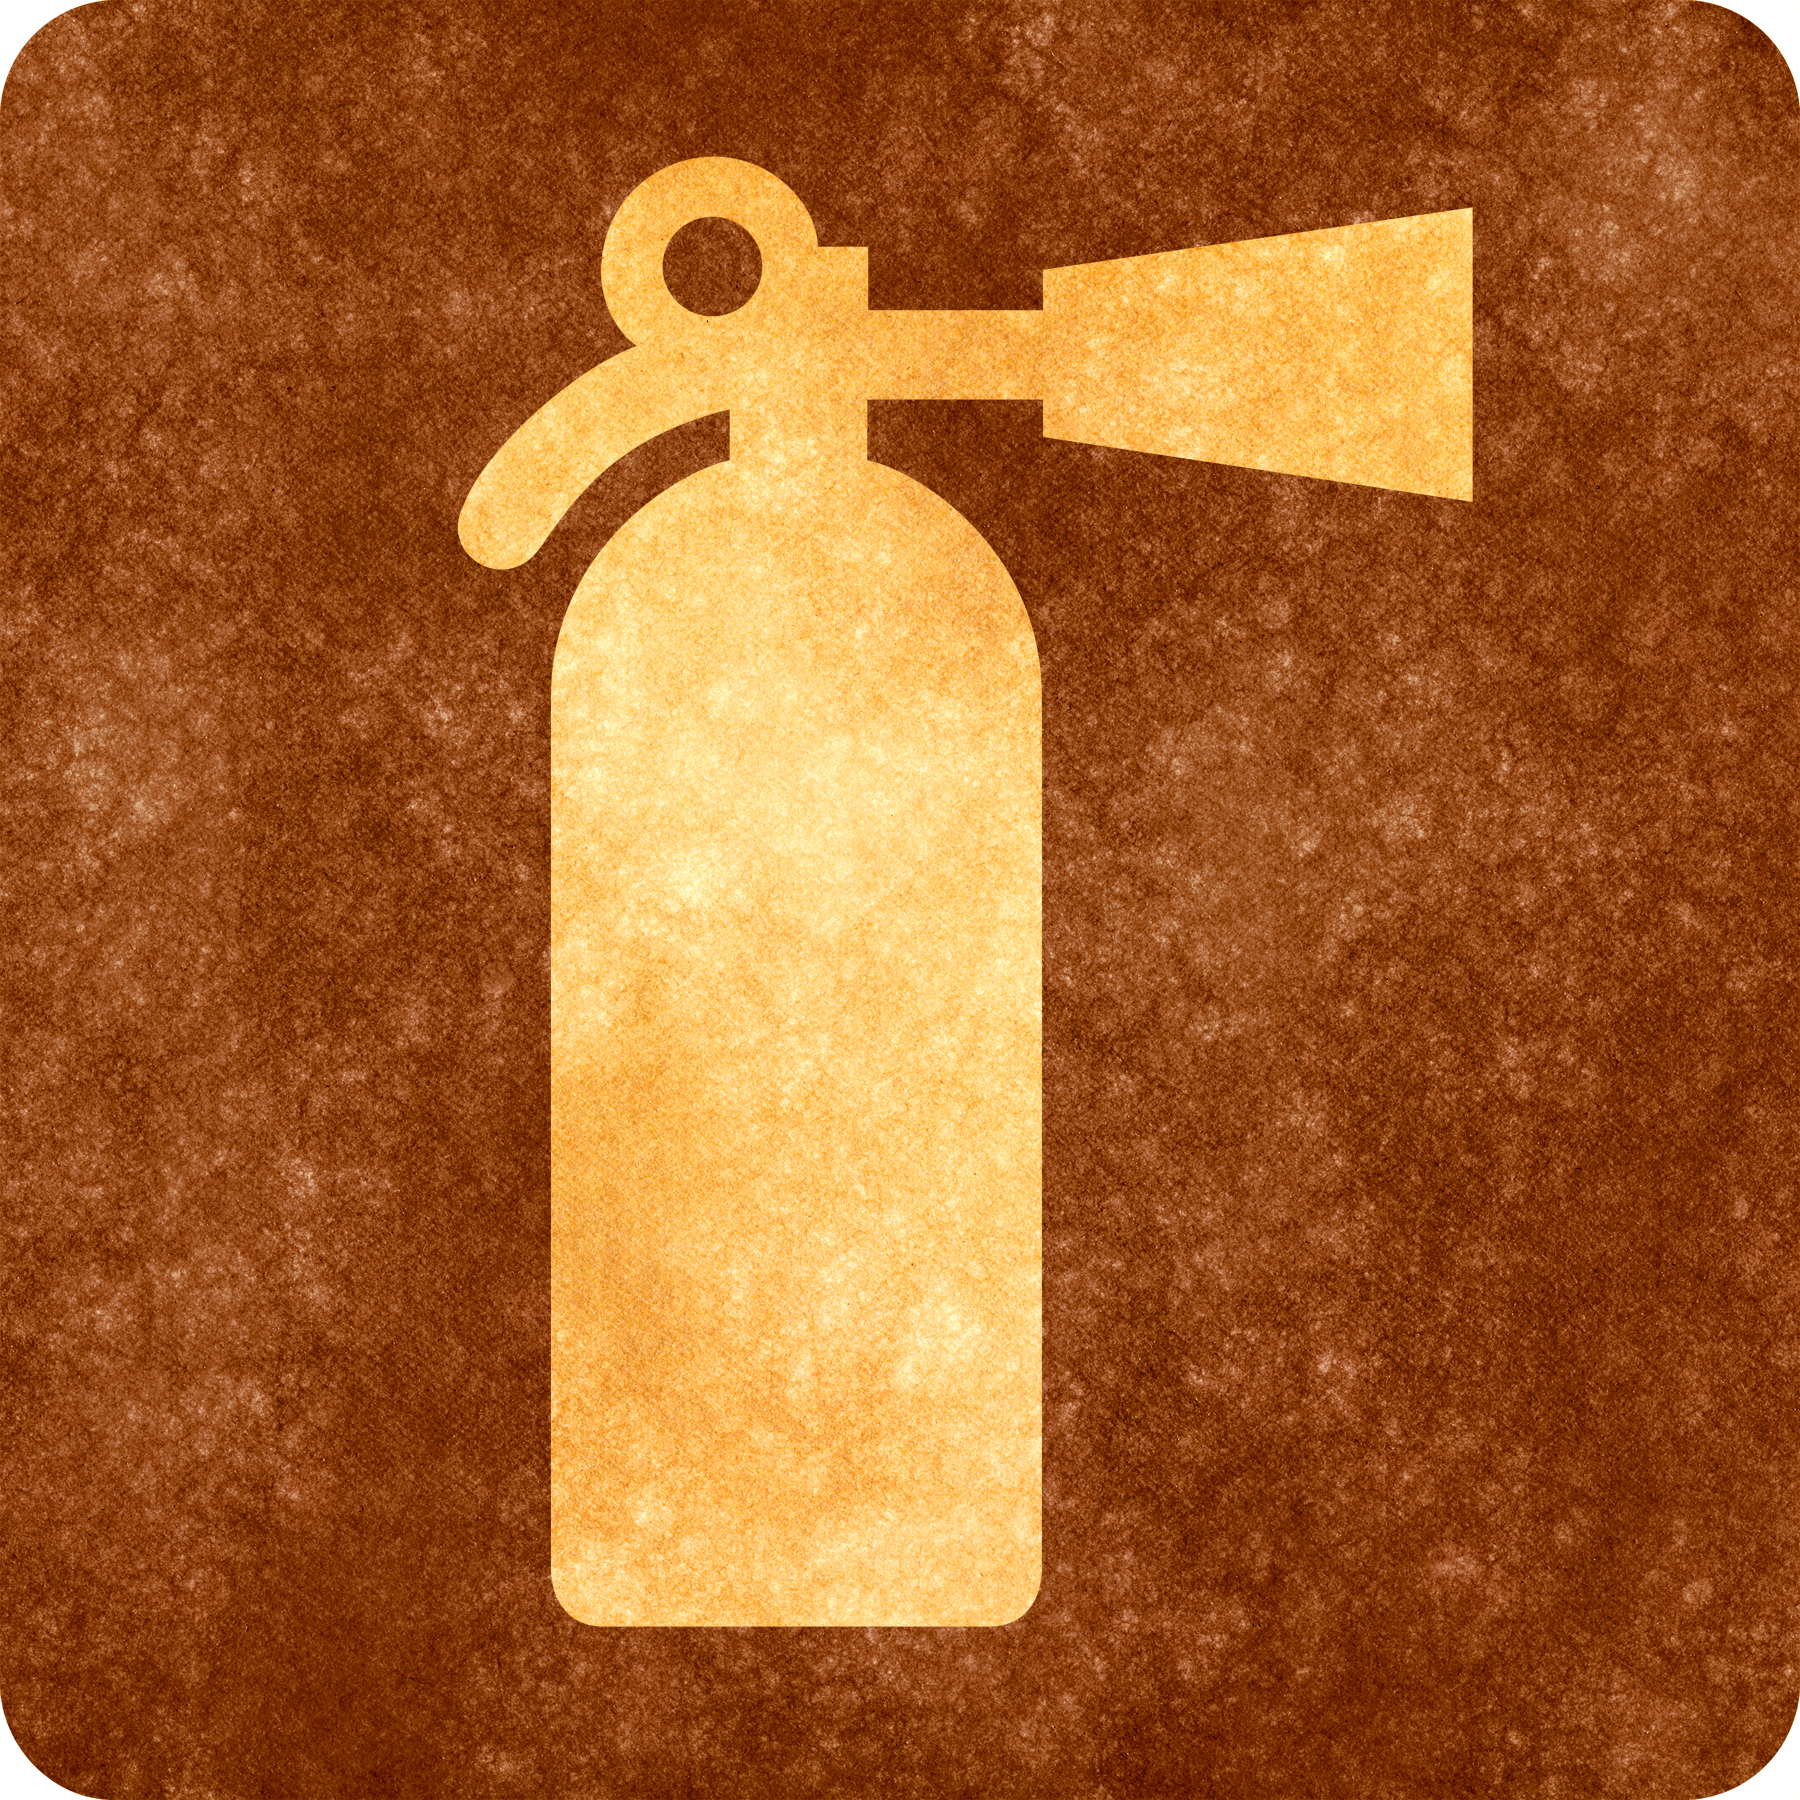 Sepia Grunge Sign - Fire Extinguisher, Age, Sepia, Old, Photo, HQ Photo